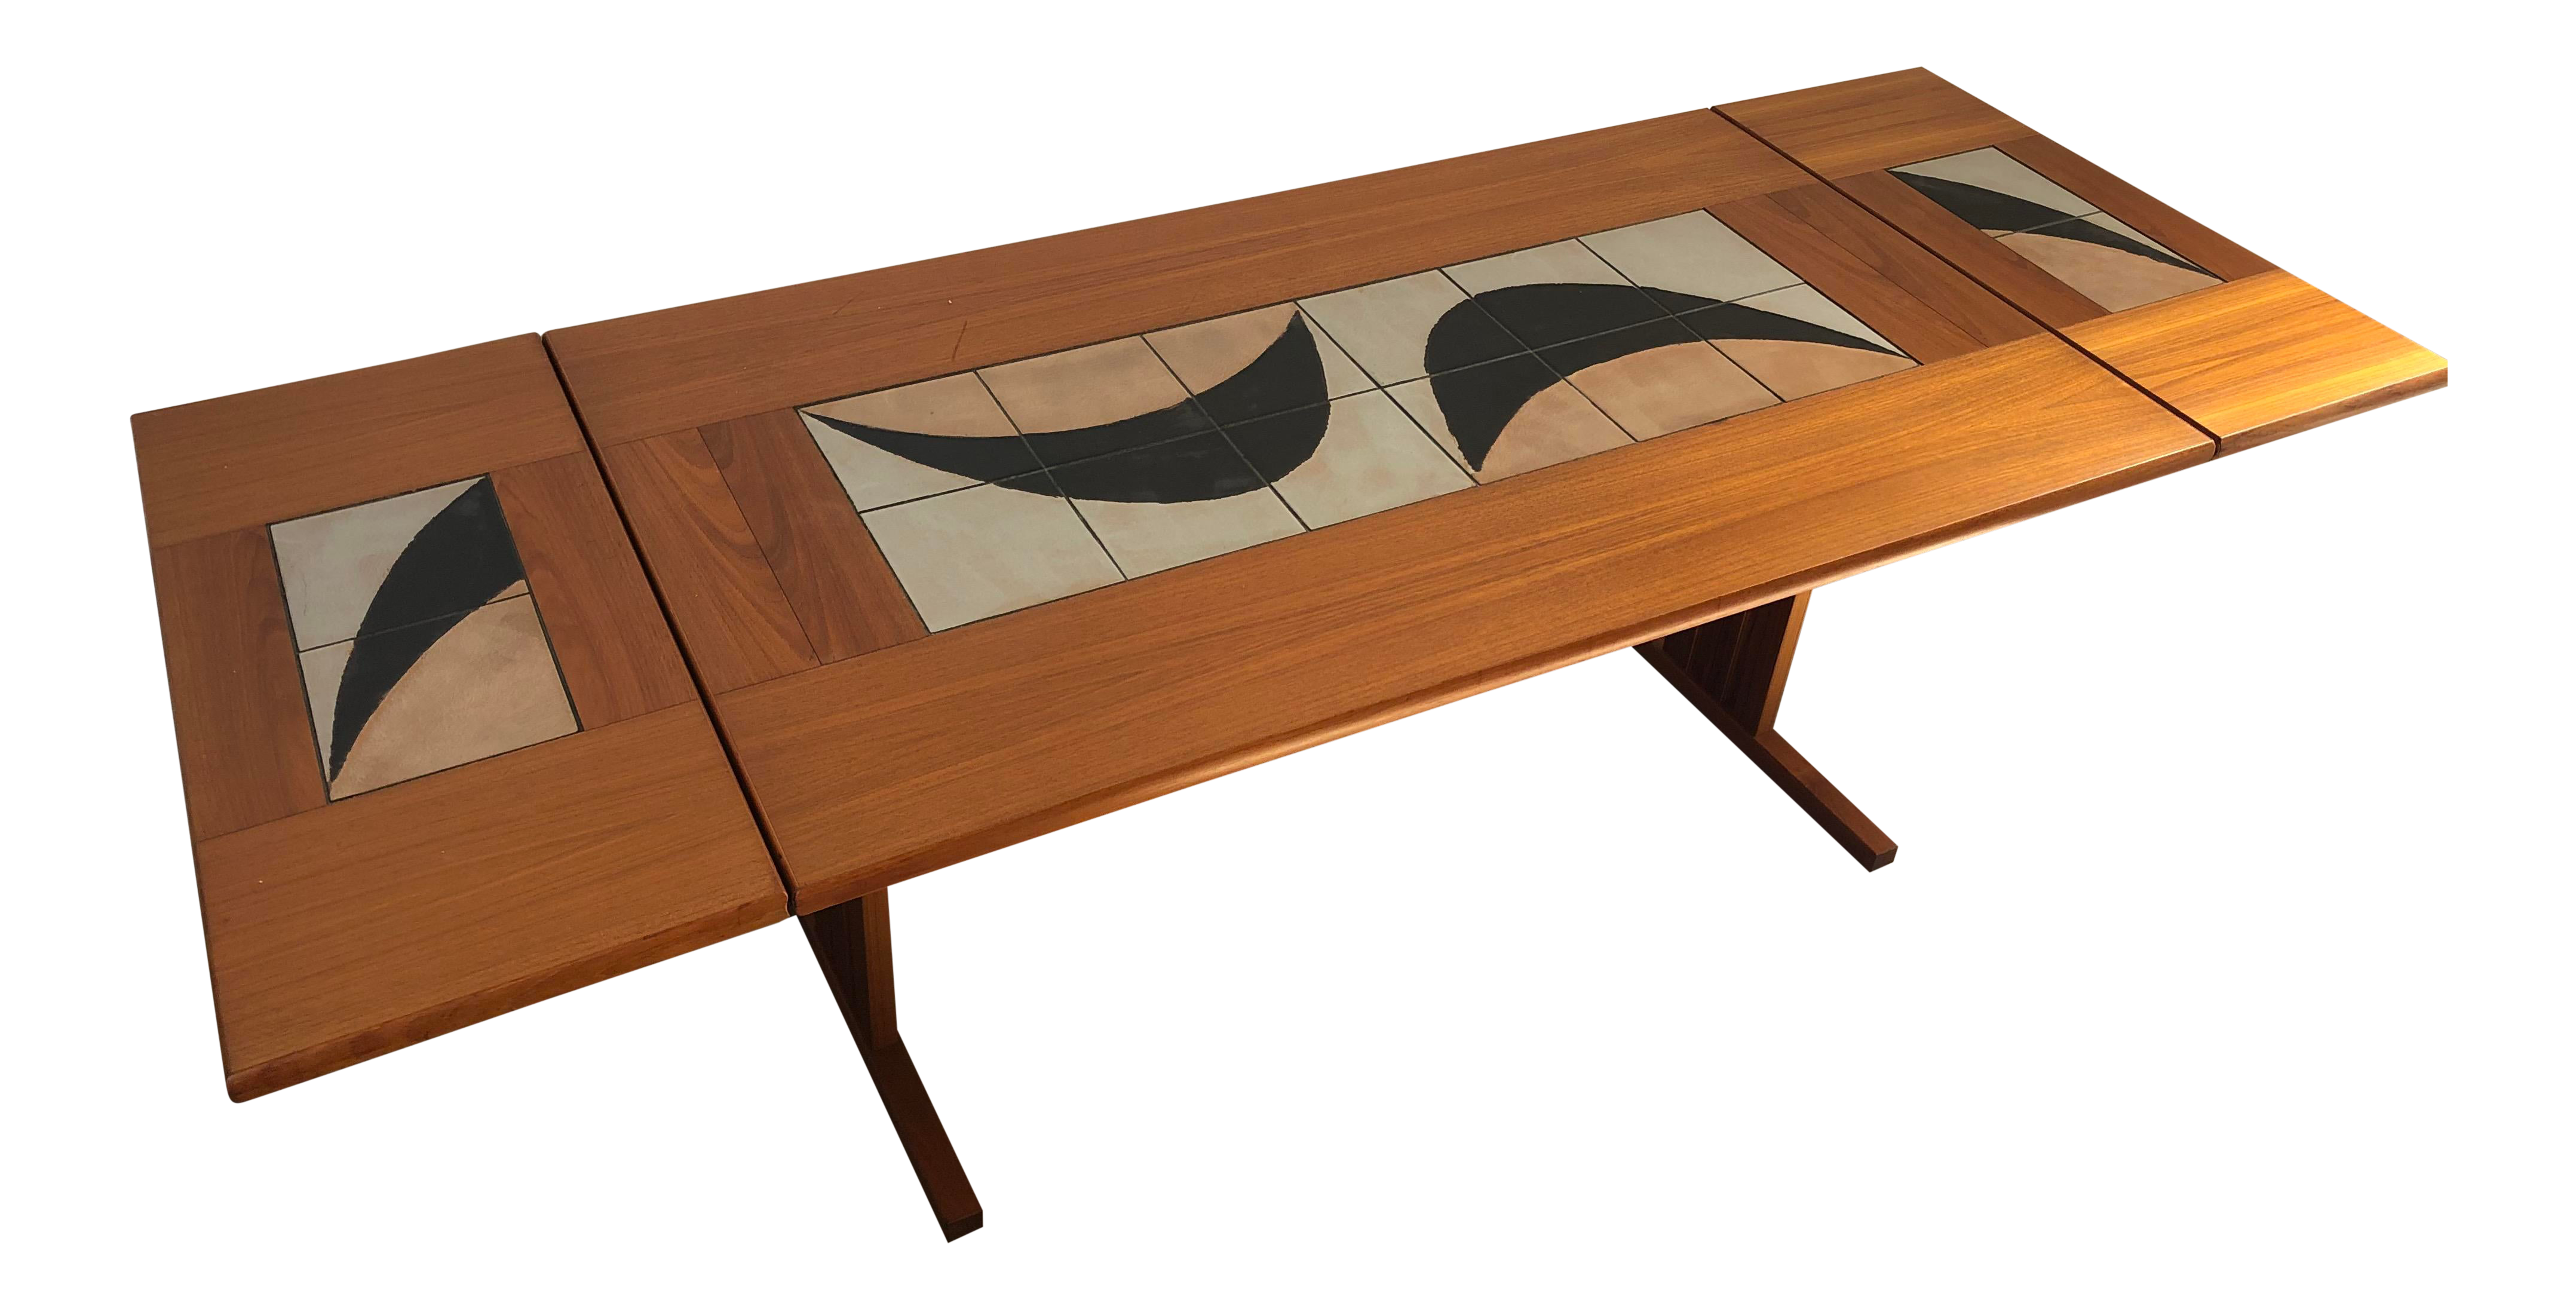 Vintage Mid Century Modern Danish Dining Table With Tile Inlay And 2 Extensions Chairish